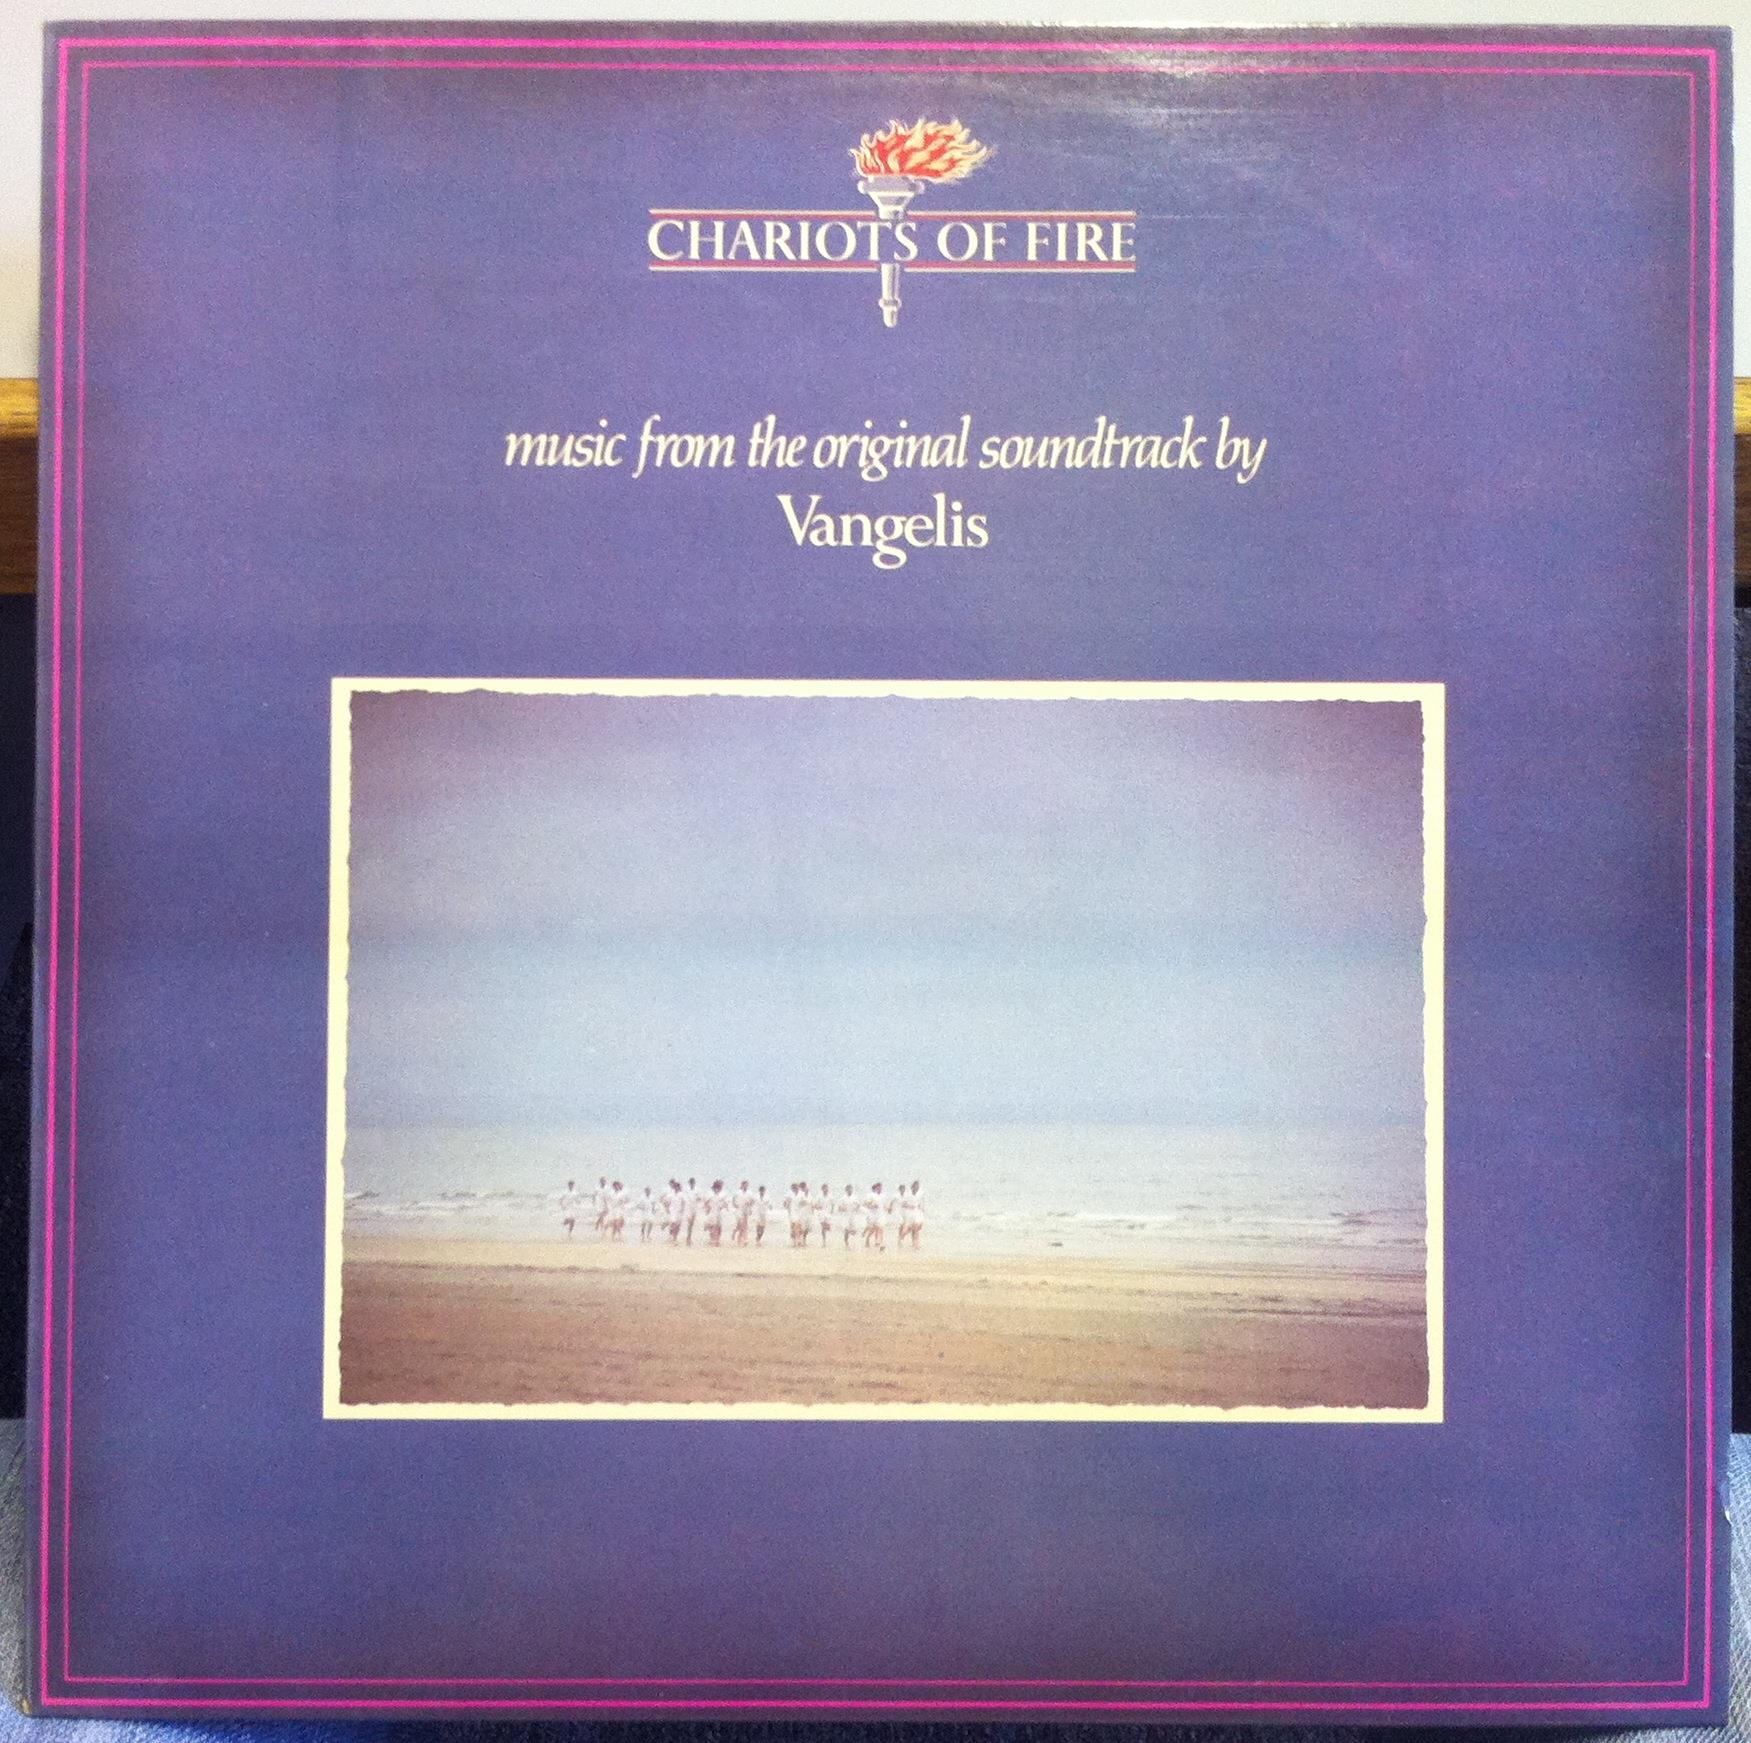 Vangelis Sooundtrack - Vangelis Sooundtrack Chariots Of Fire Lp Mint- Spain Spanish A1/b1 1981 Record (chariots Of Fire)